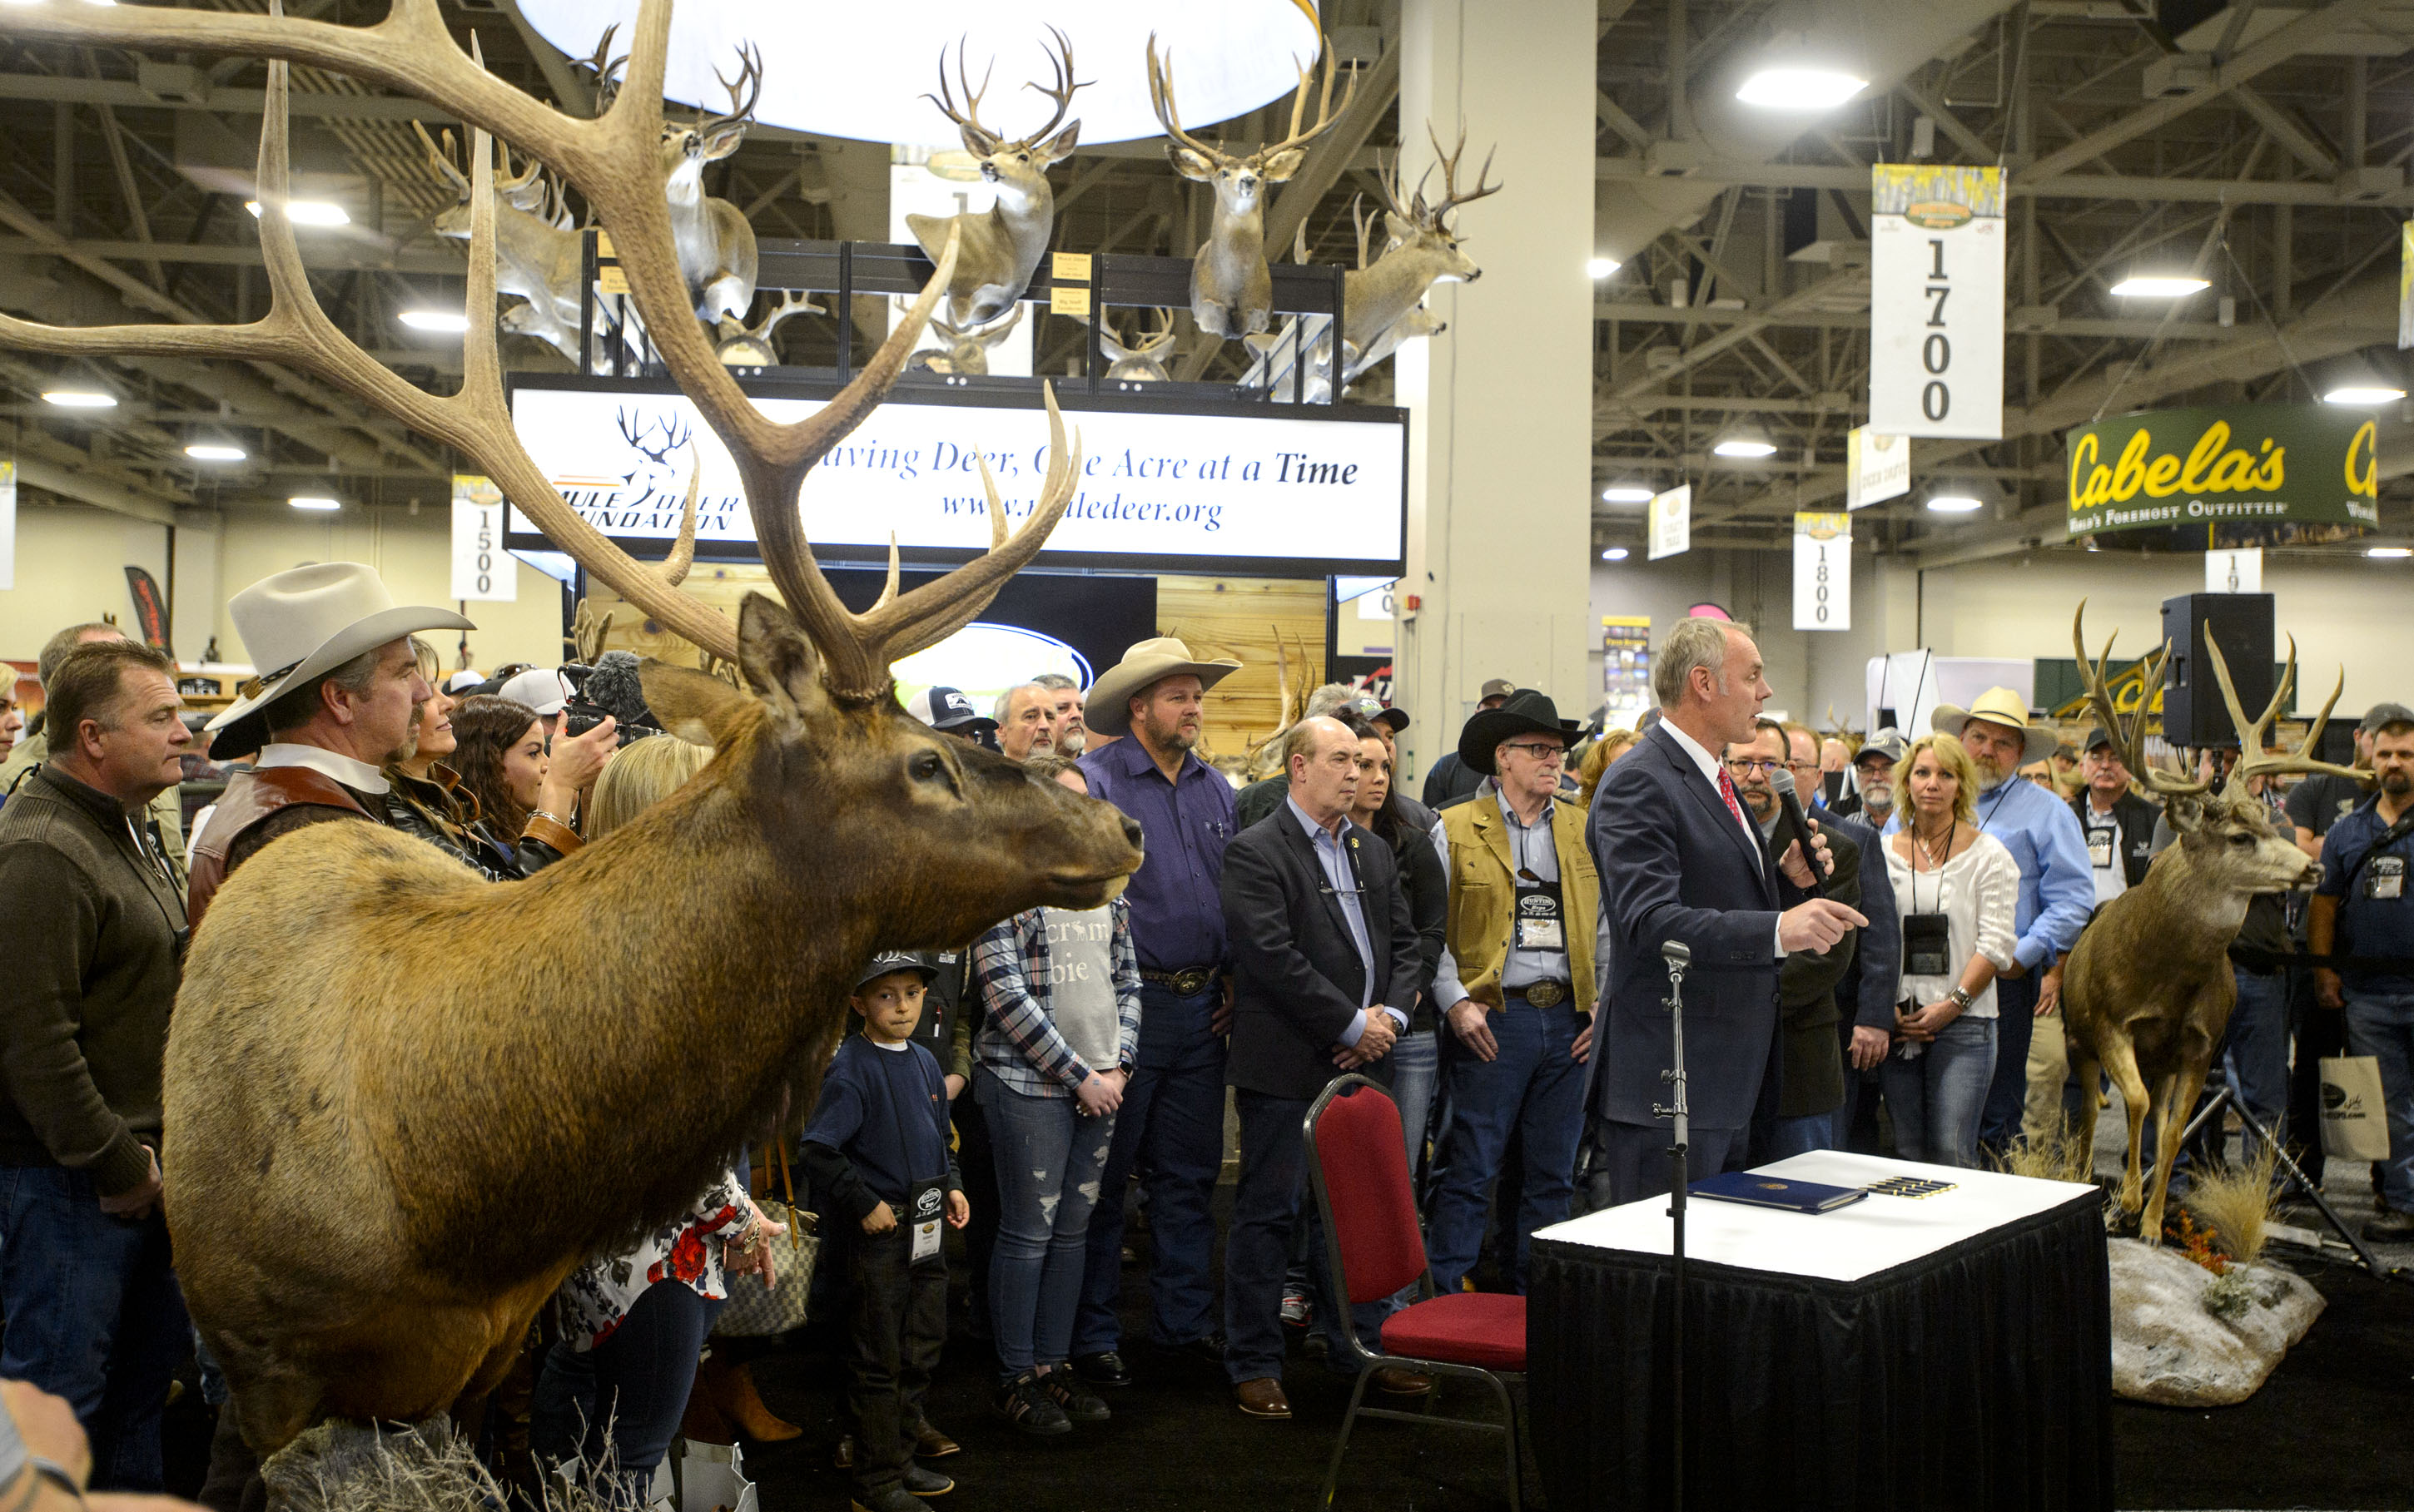 (Steve Griffin  |  The Salt Lake Tribune)  U.S. Secretary of the Interior Ryan Zinke stands with people attending the Western Hunting and Conservation Expo at the Salt Palace Convention Center as he prepares to sign Secretarial Order 3362, which will improve habitat quality and western big game winter range and migration corridors for big game, in Salt Lake City Friday February 9, 2018.